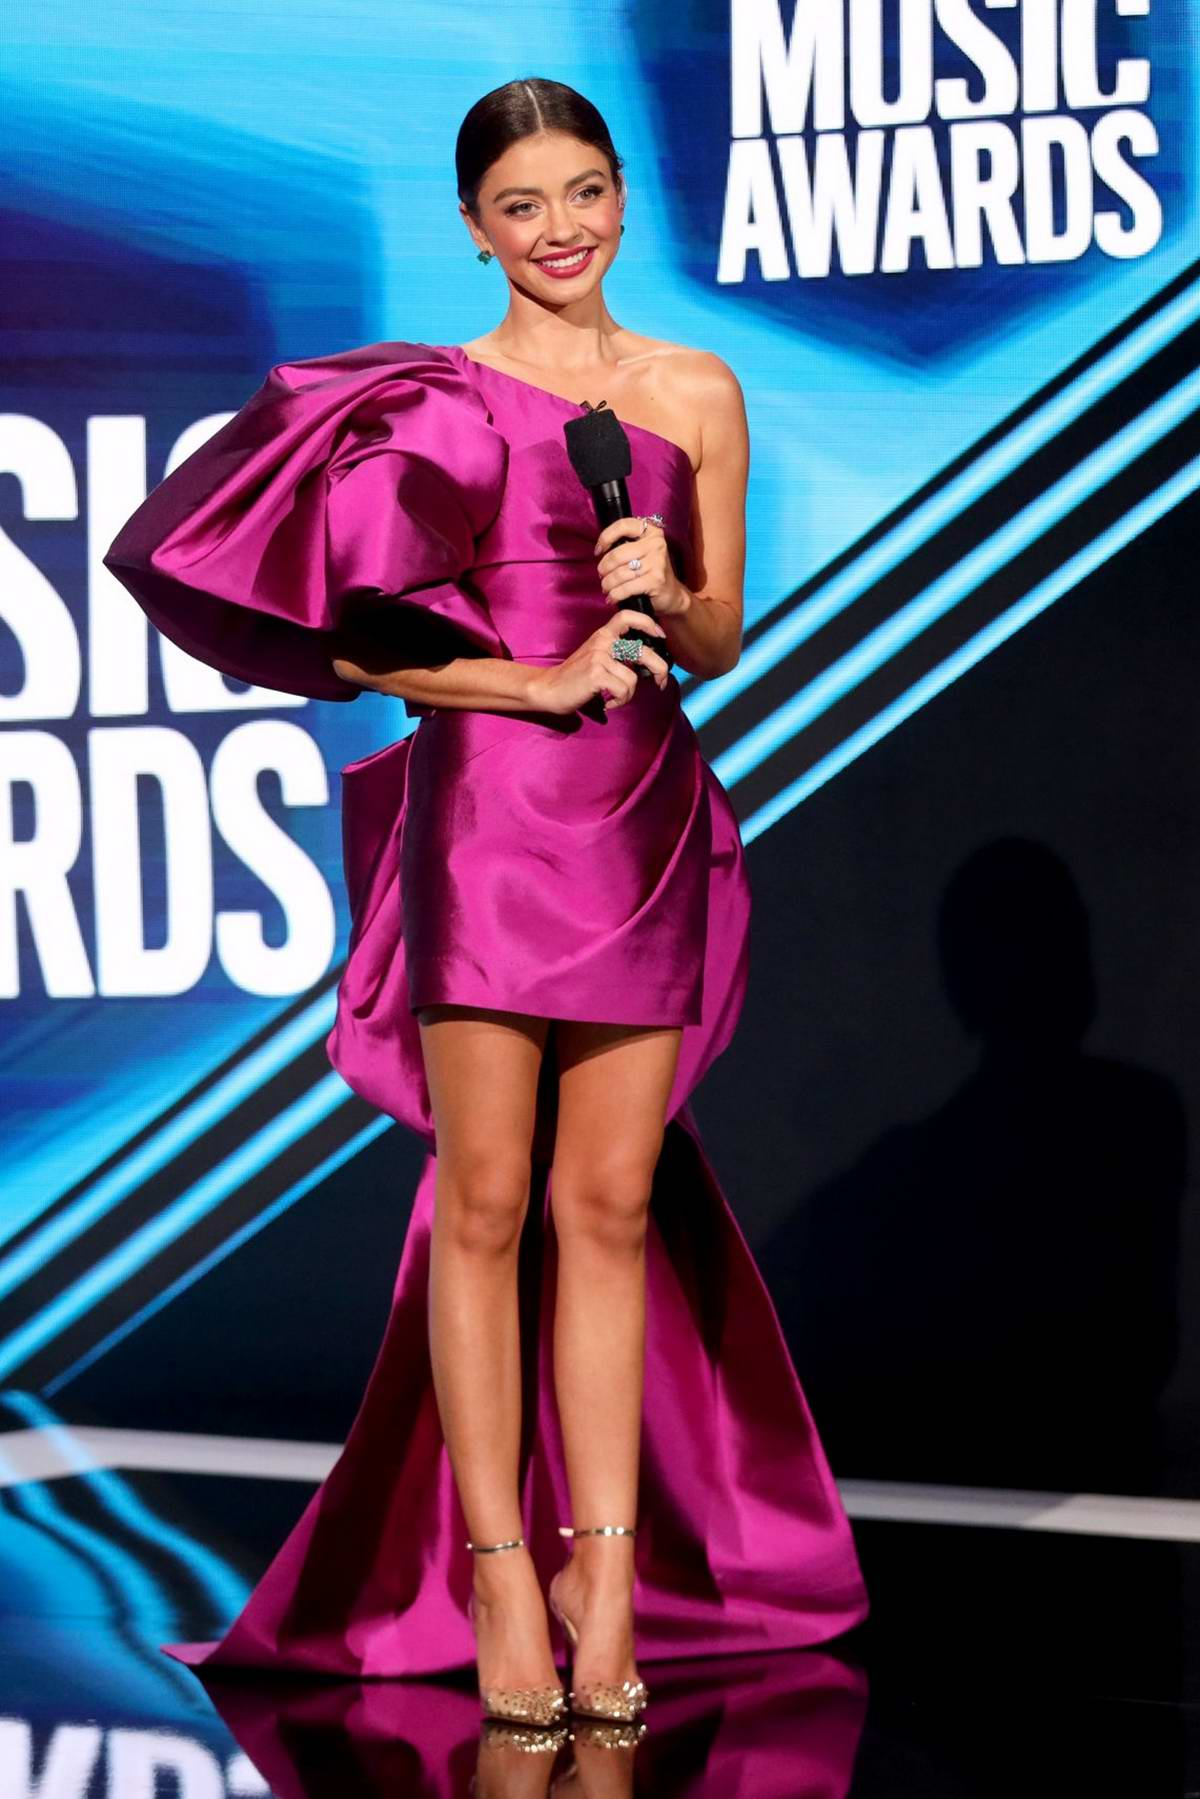 Sarah Hyland attends the 2020 CMT Music Awards in Nashville, Tennessee